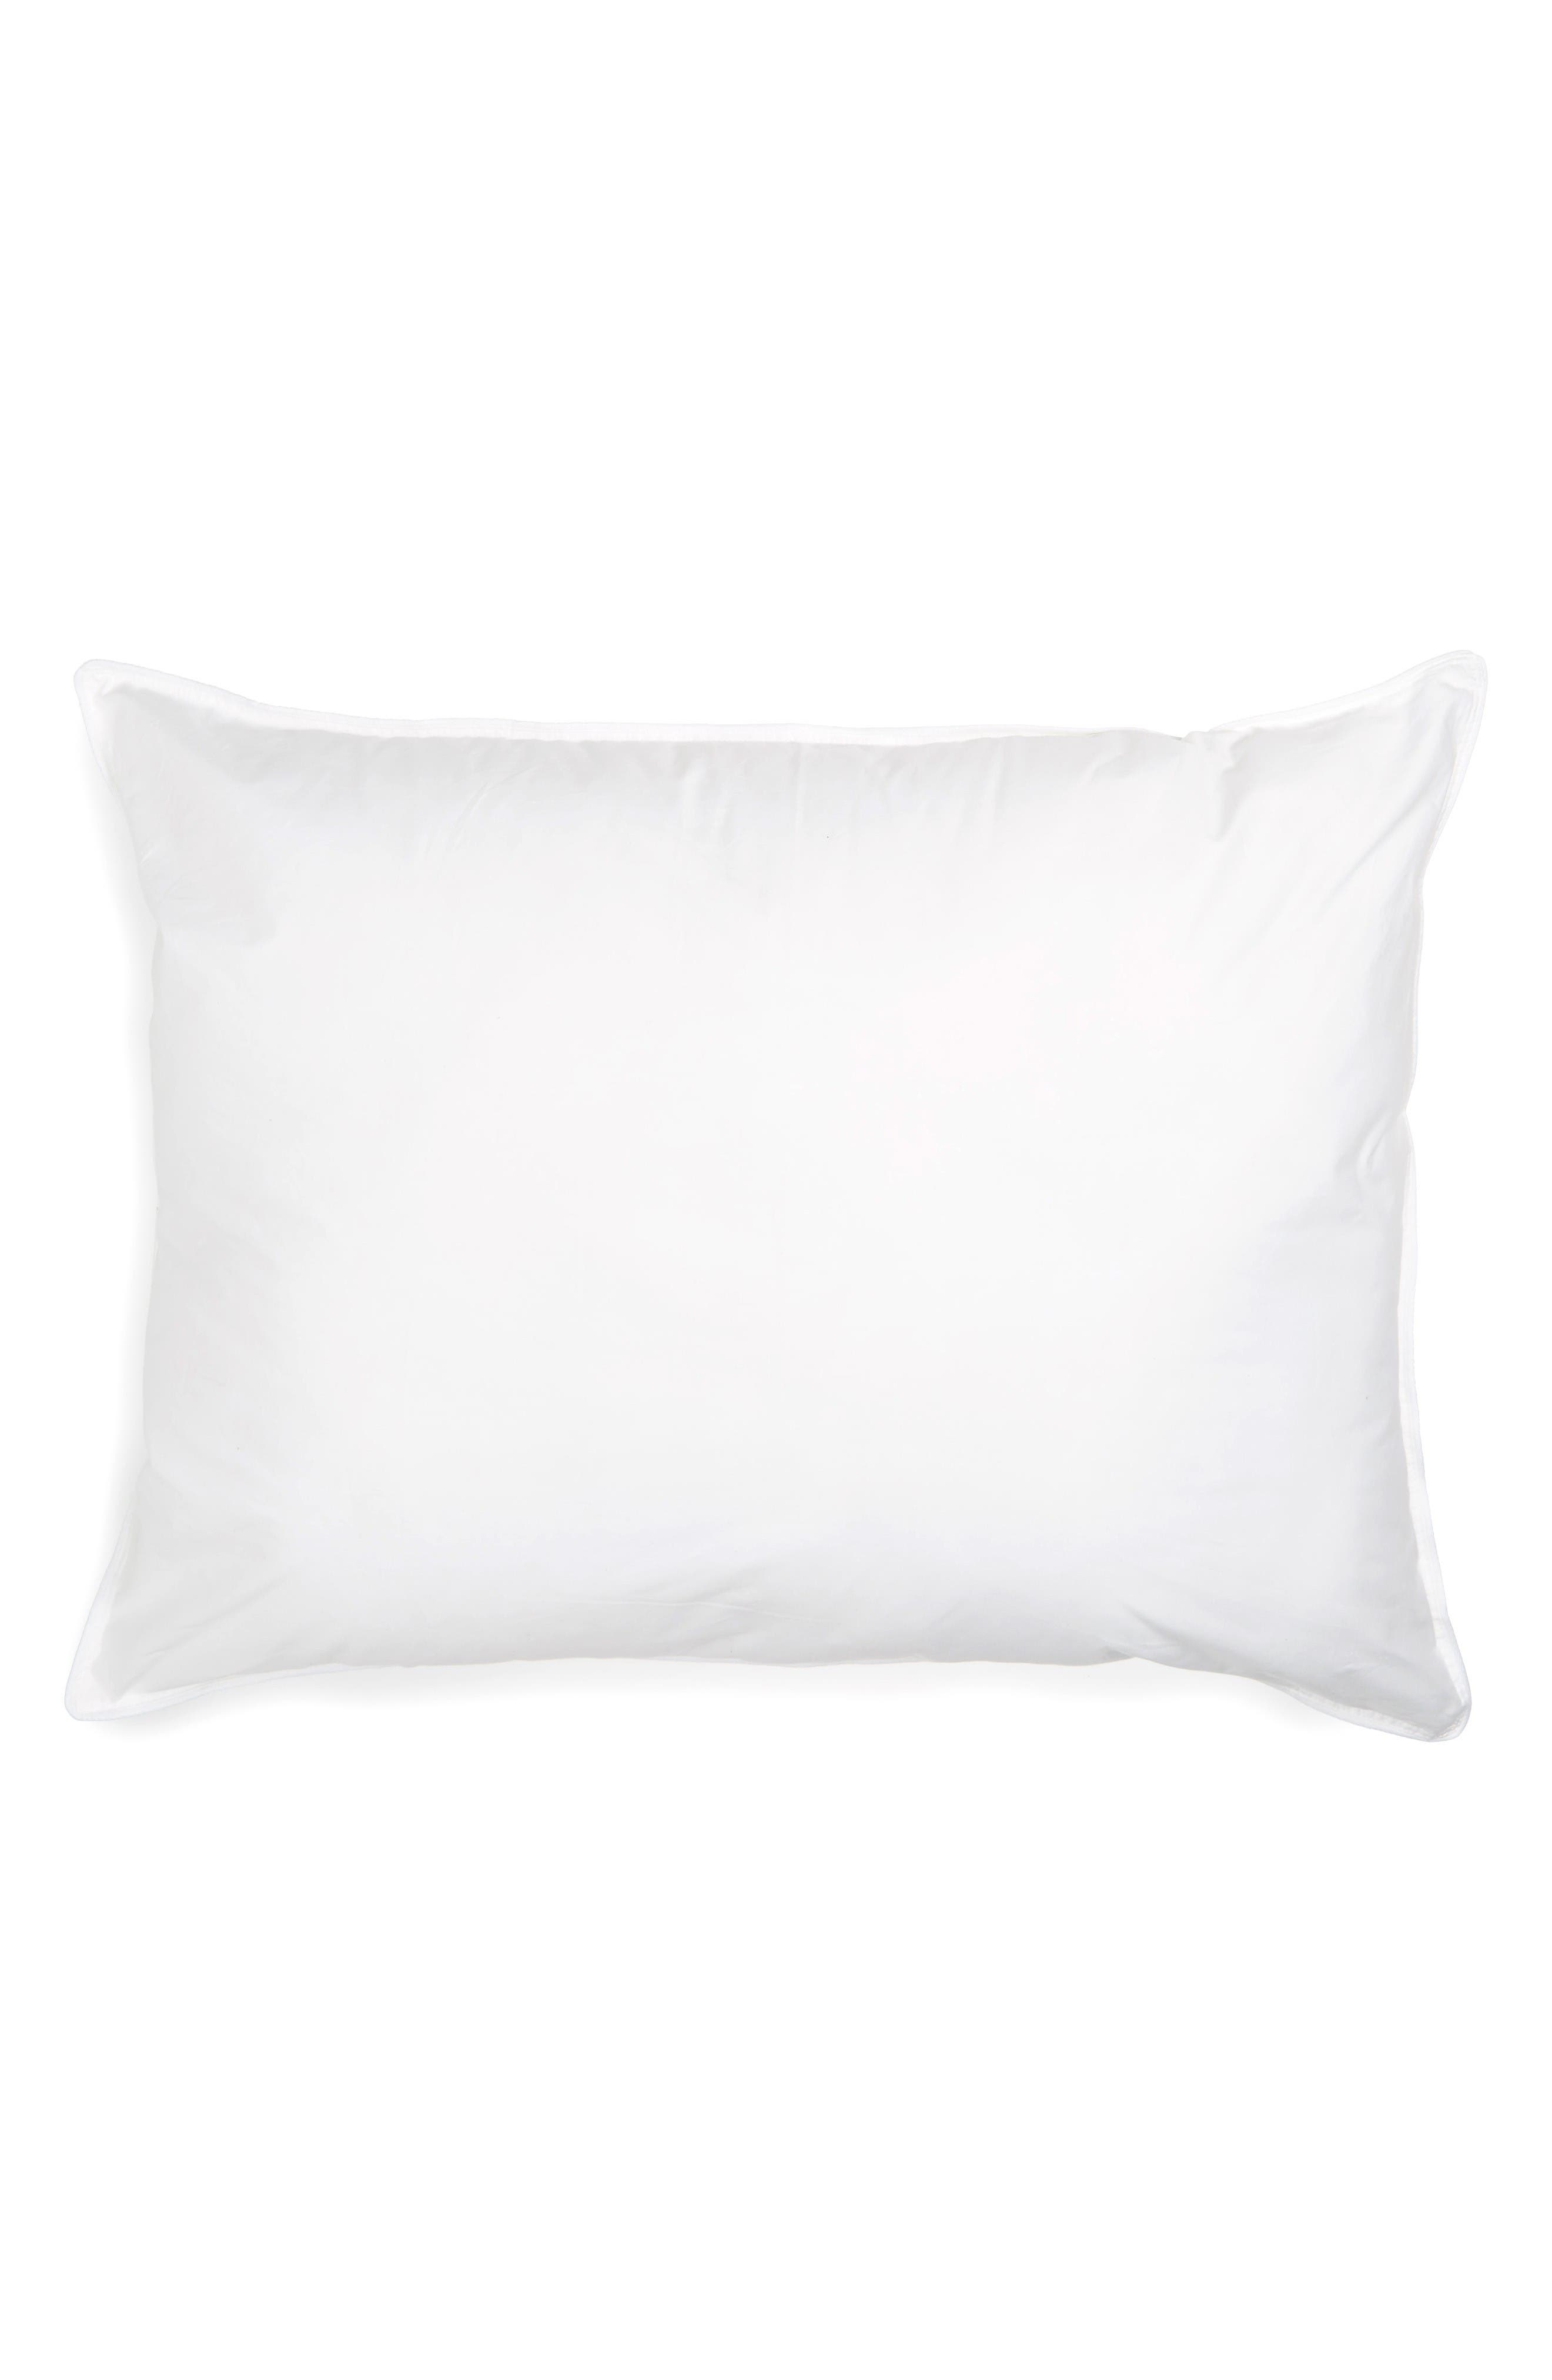 Westin At Home 'Home Collection' Hypoallergenic Pillow